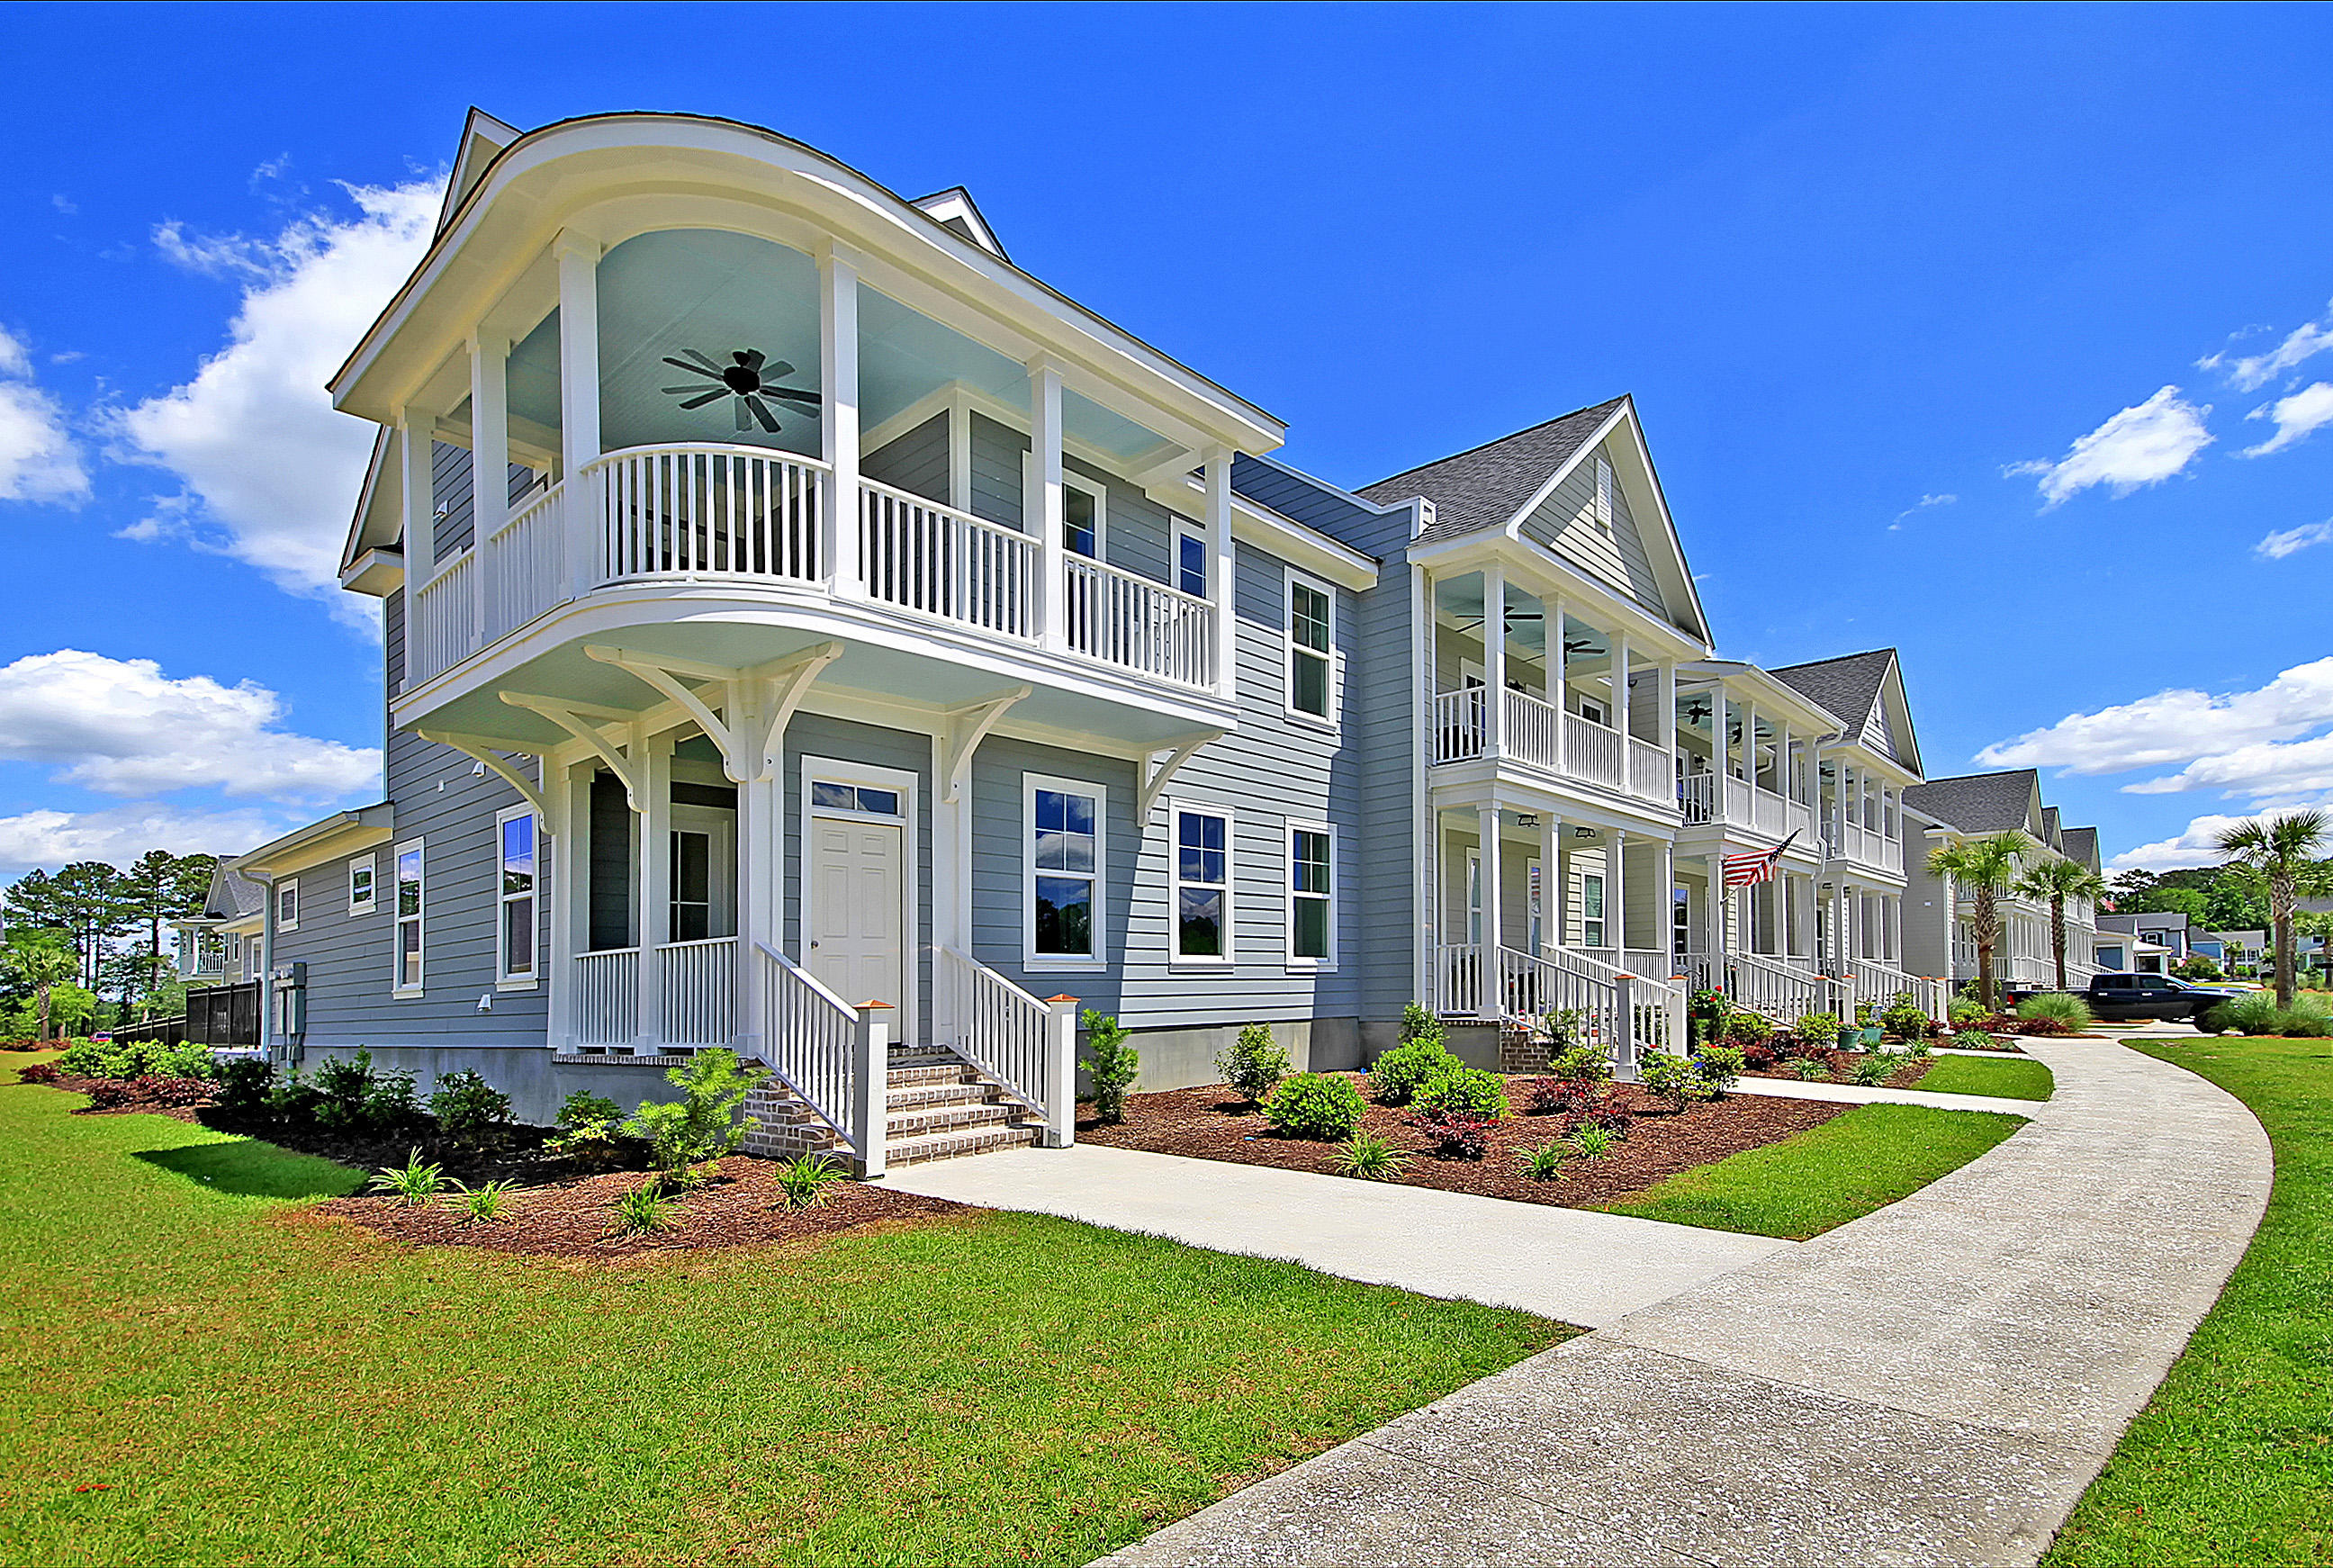 Poplar Grove Homes For Sale - 4025 Capensis, Hollywood, SC - 55